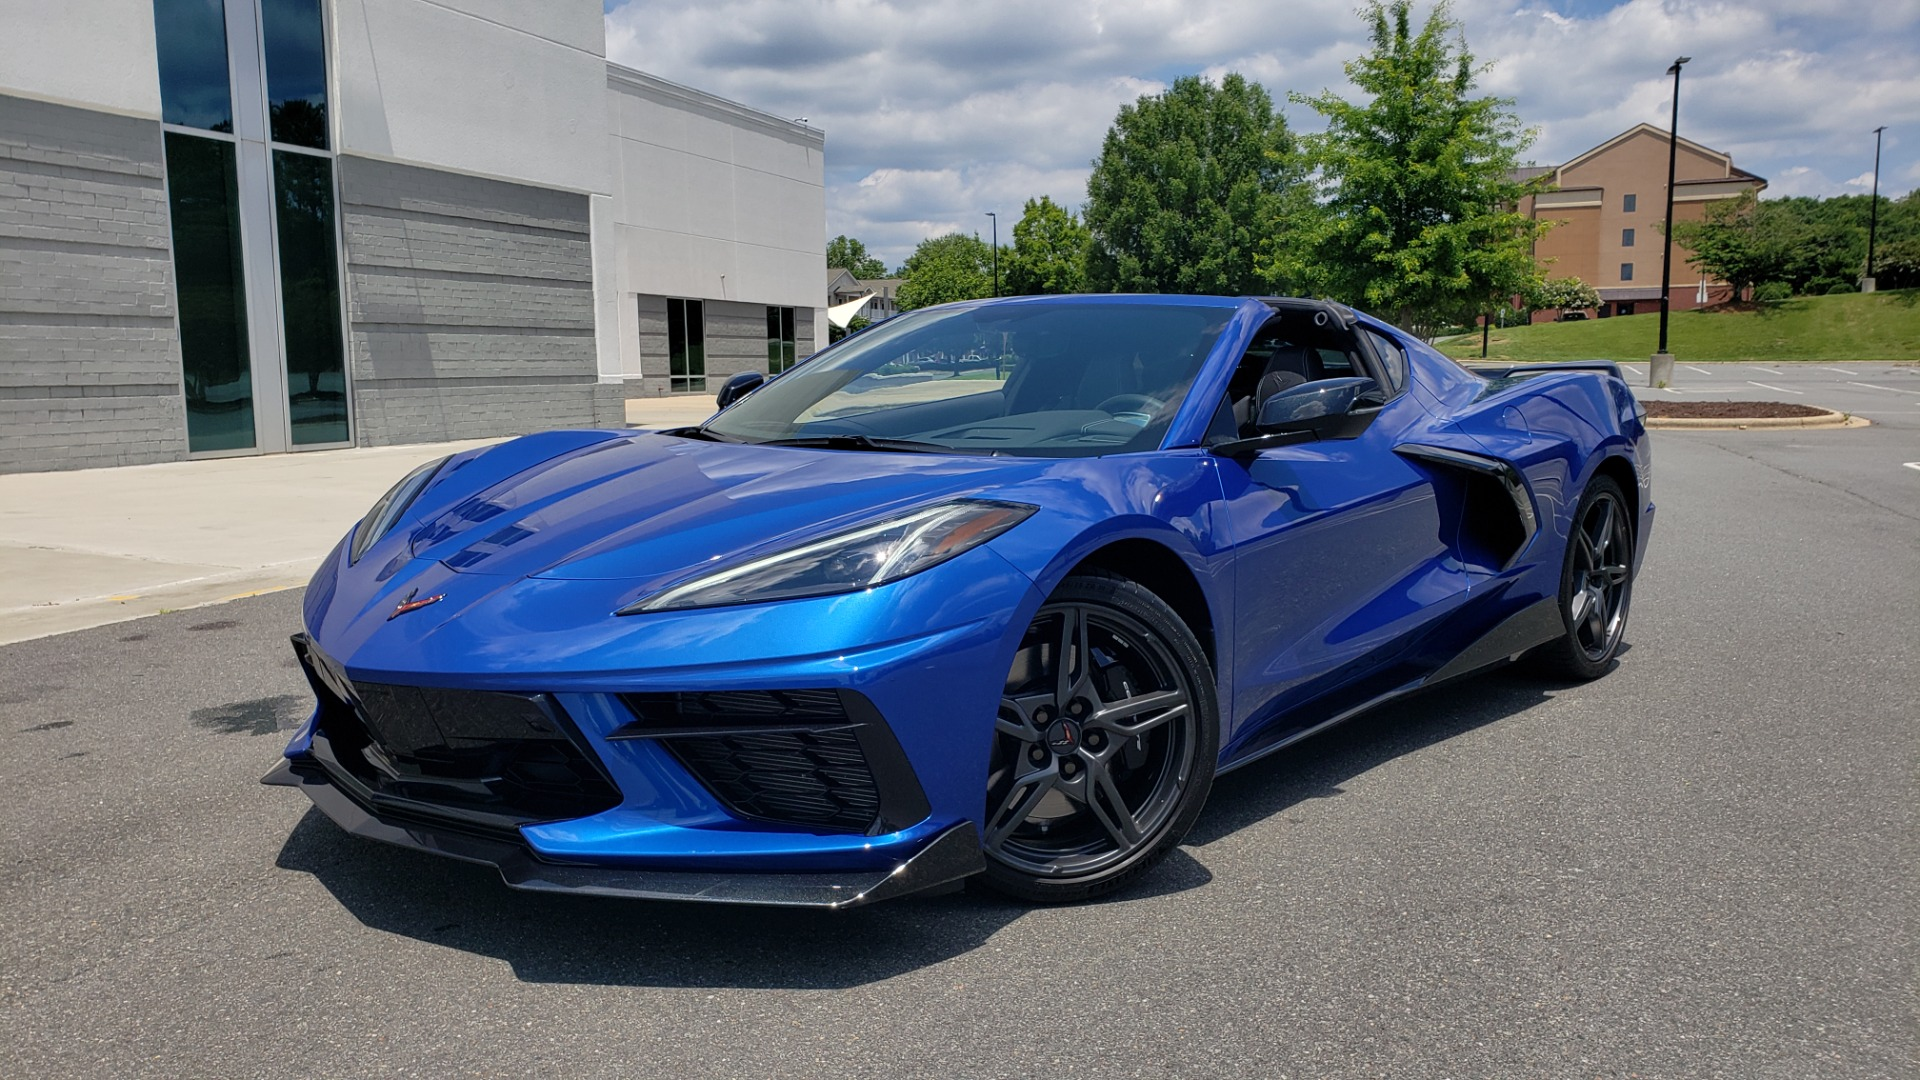 Used 2020 Chevrolet CORVETTE C8 STINGRAY COUPE 2LT / PERF & Z51 PKG / NAV / BOSE / 8-SPD AUTO / REARVIEW for sale Sold at Formula Imports in Charlotte NC 28227 12